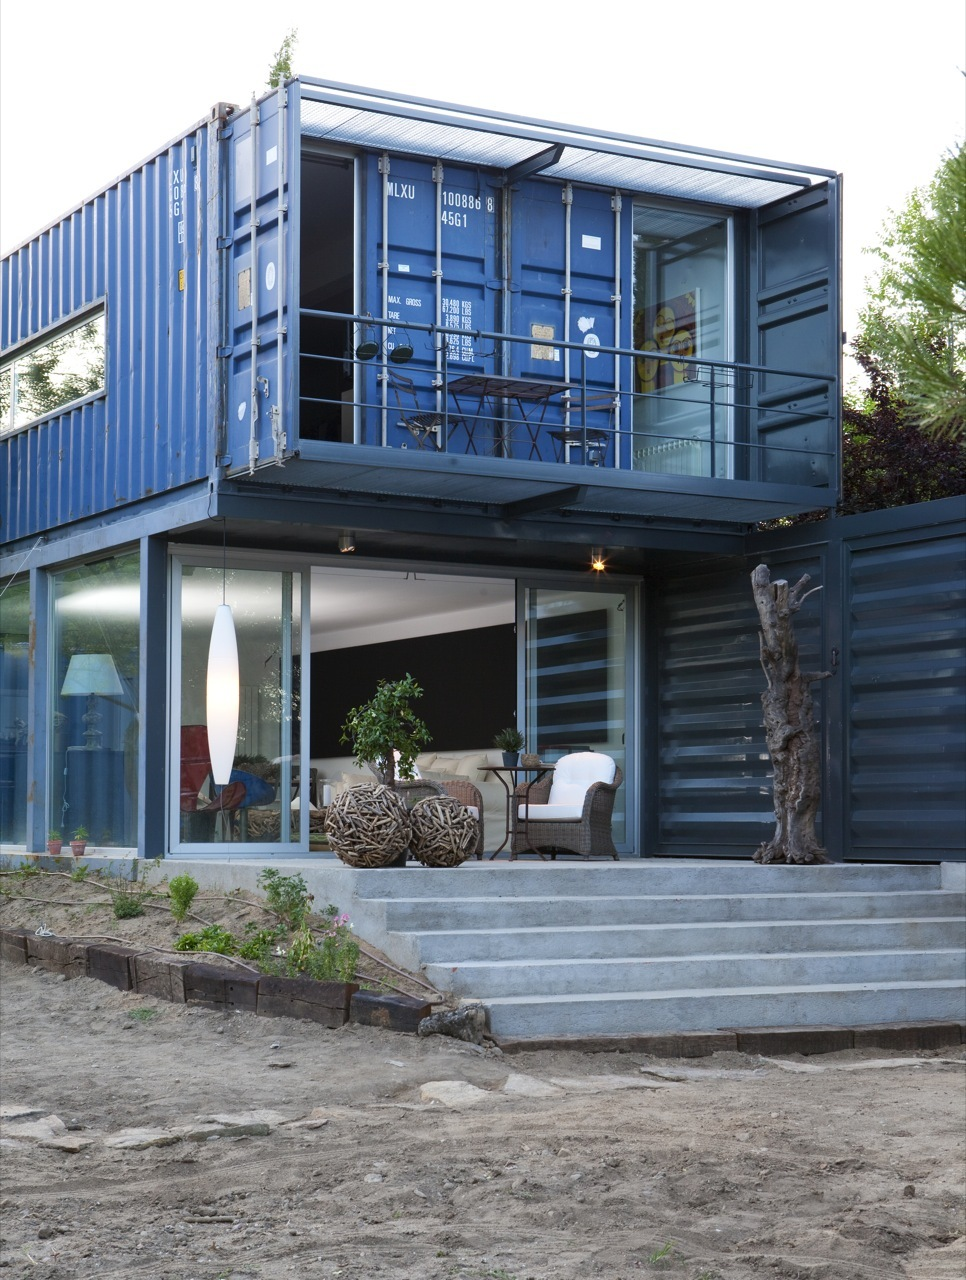 Shipping container homes two story container house in el tiemblo spain - Storage containers as homes ...